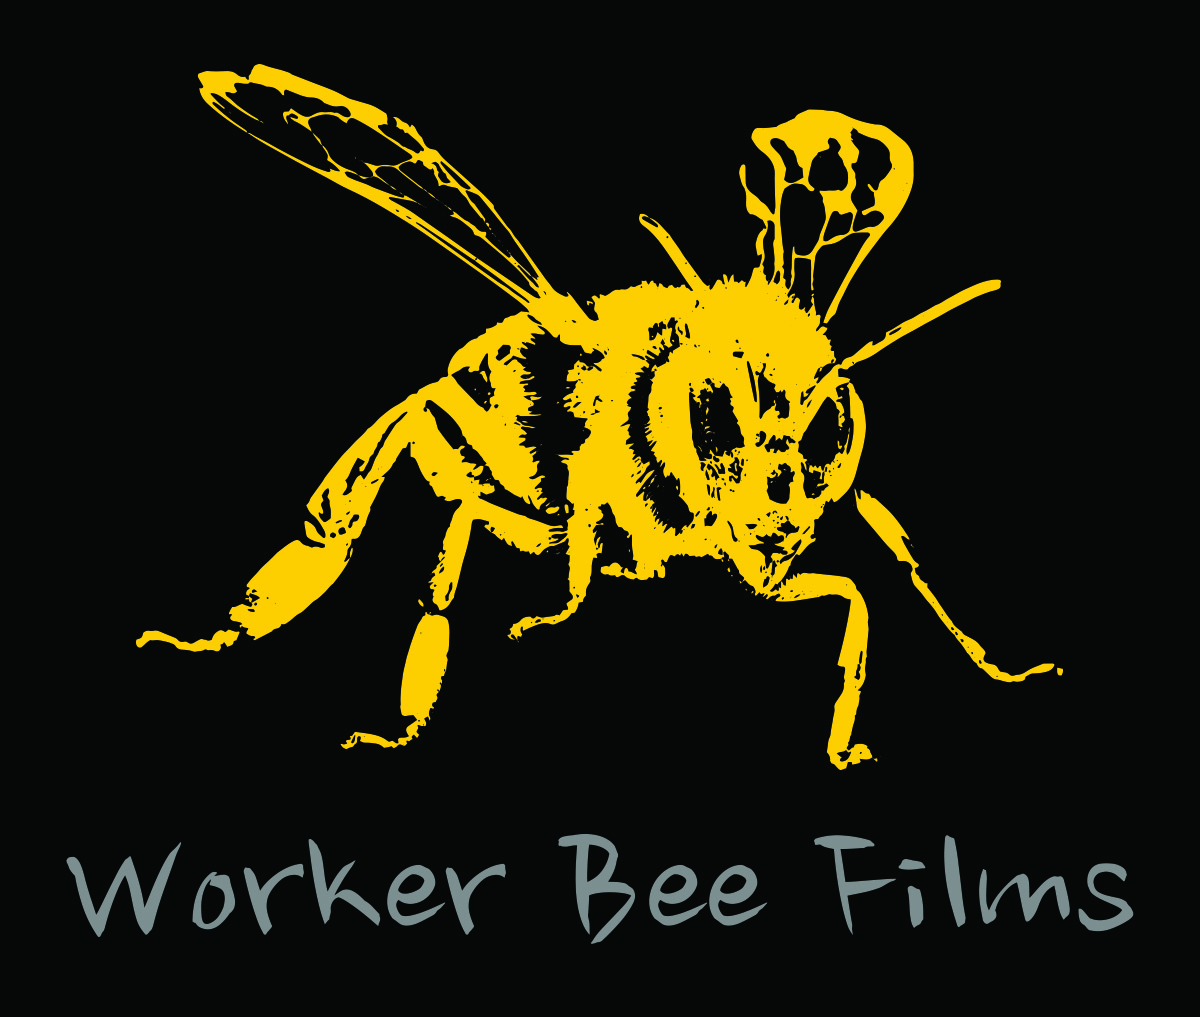 Worker Bee Films